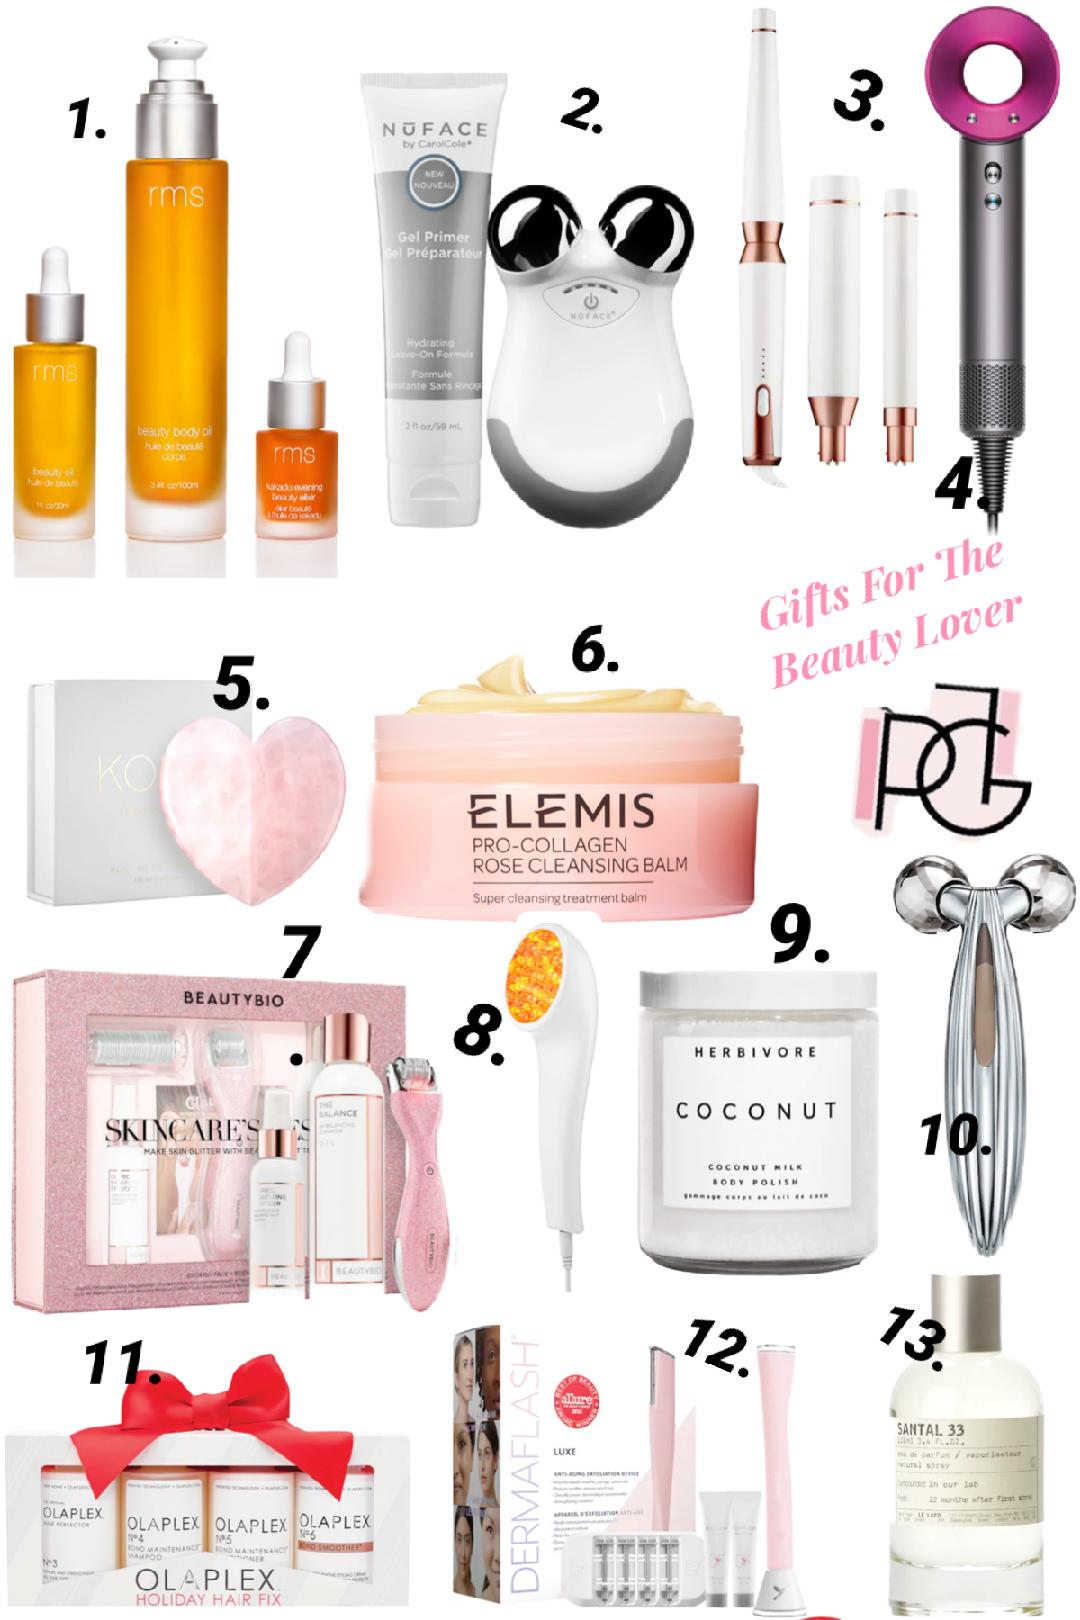 Beauty Lover Holiday Gift Guide 2020